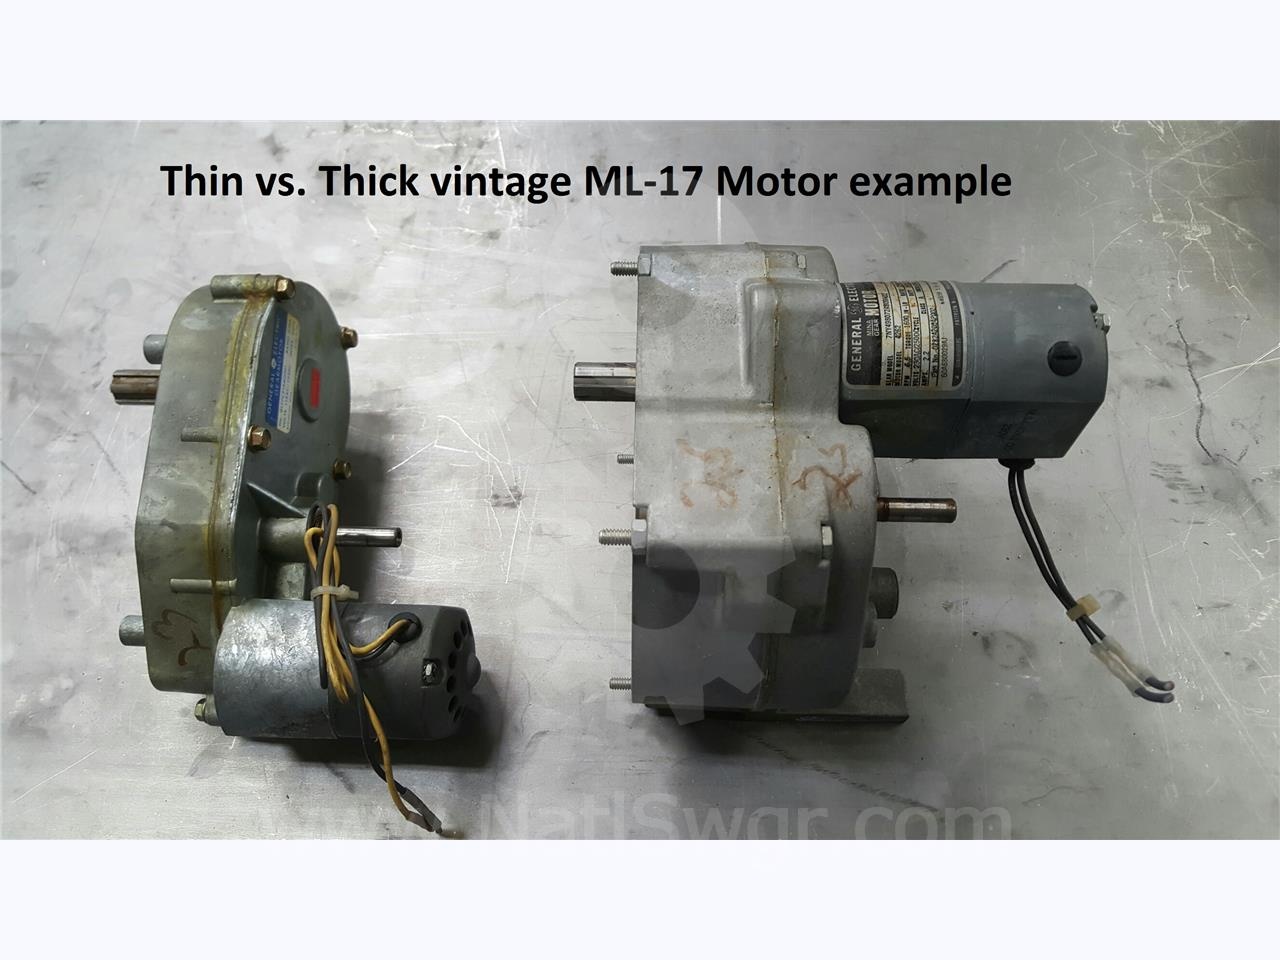 GE 120VAC / 125VDC CHARGE MOTOR THIN VERSION